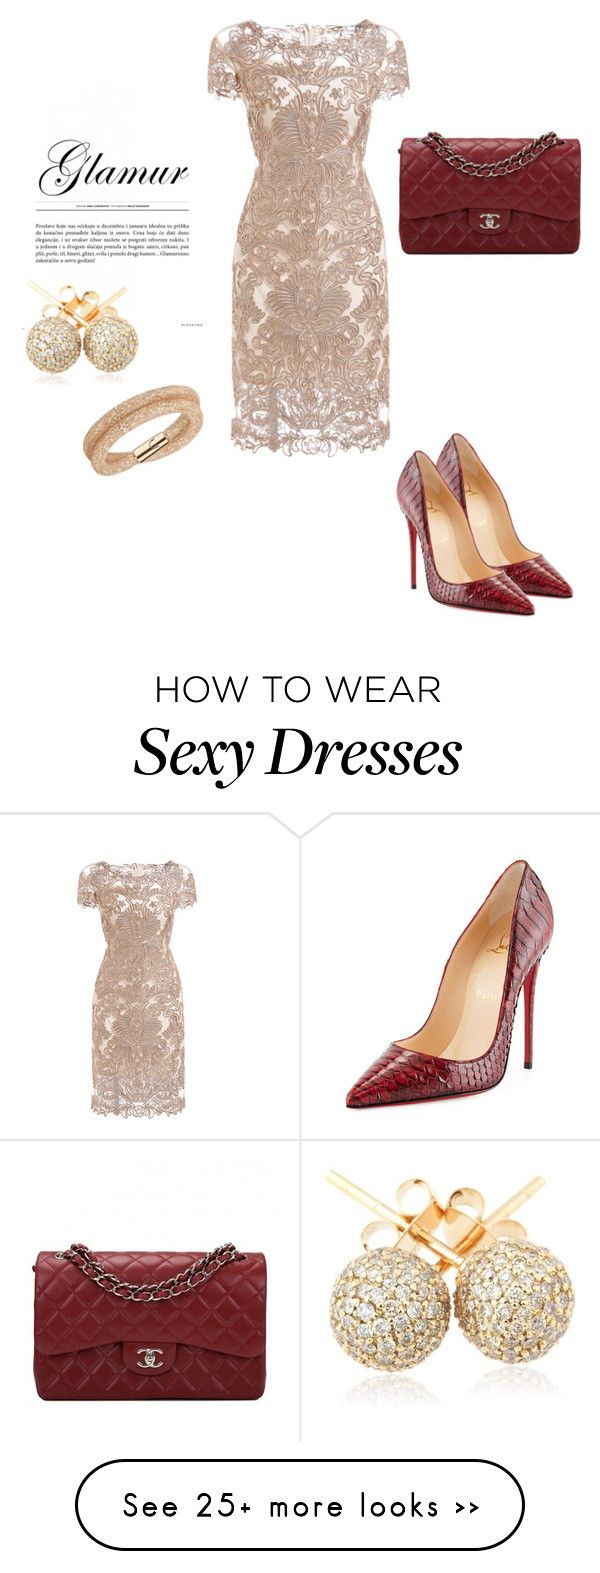 """sexy & elegance"" by littlecanary on Polyvore featuring Christian Louboutin, Chanel, Swarovski and Loushelou"